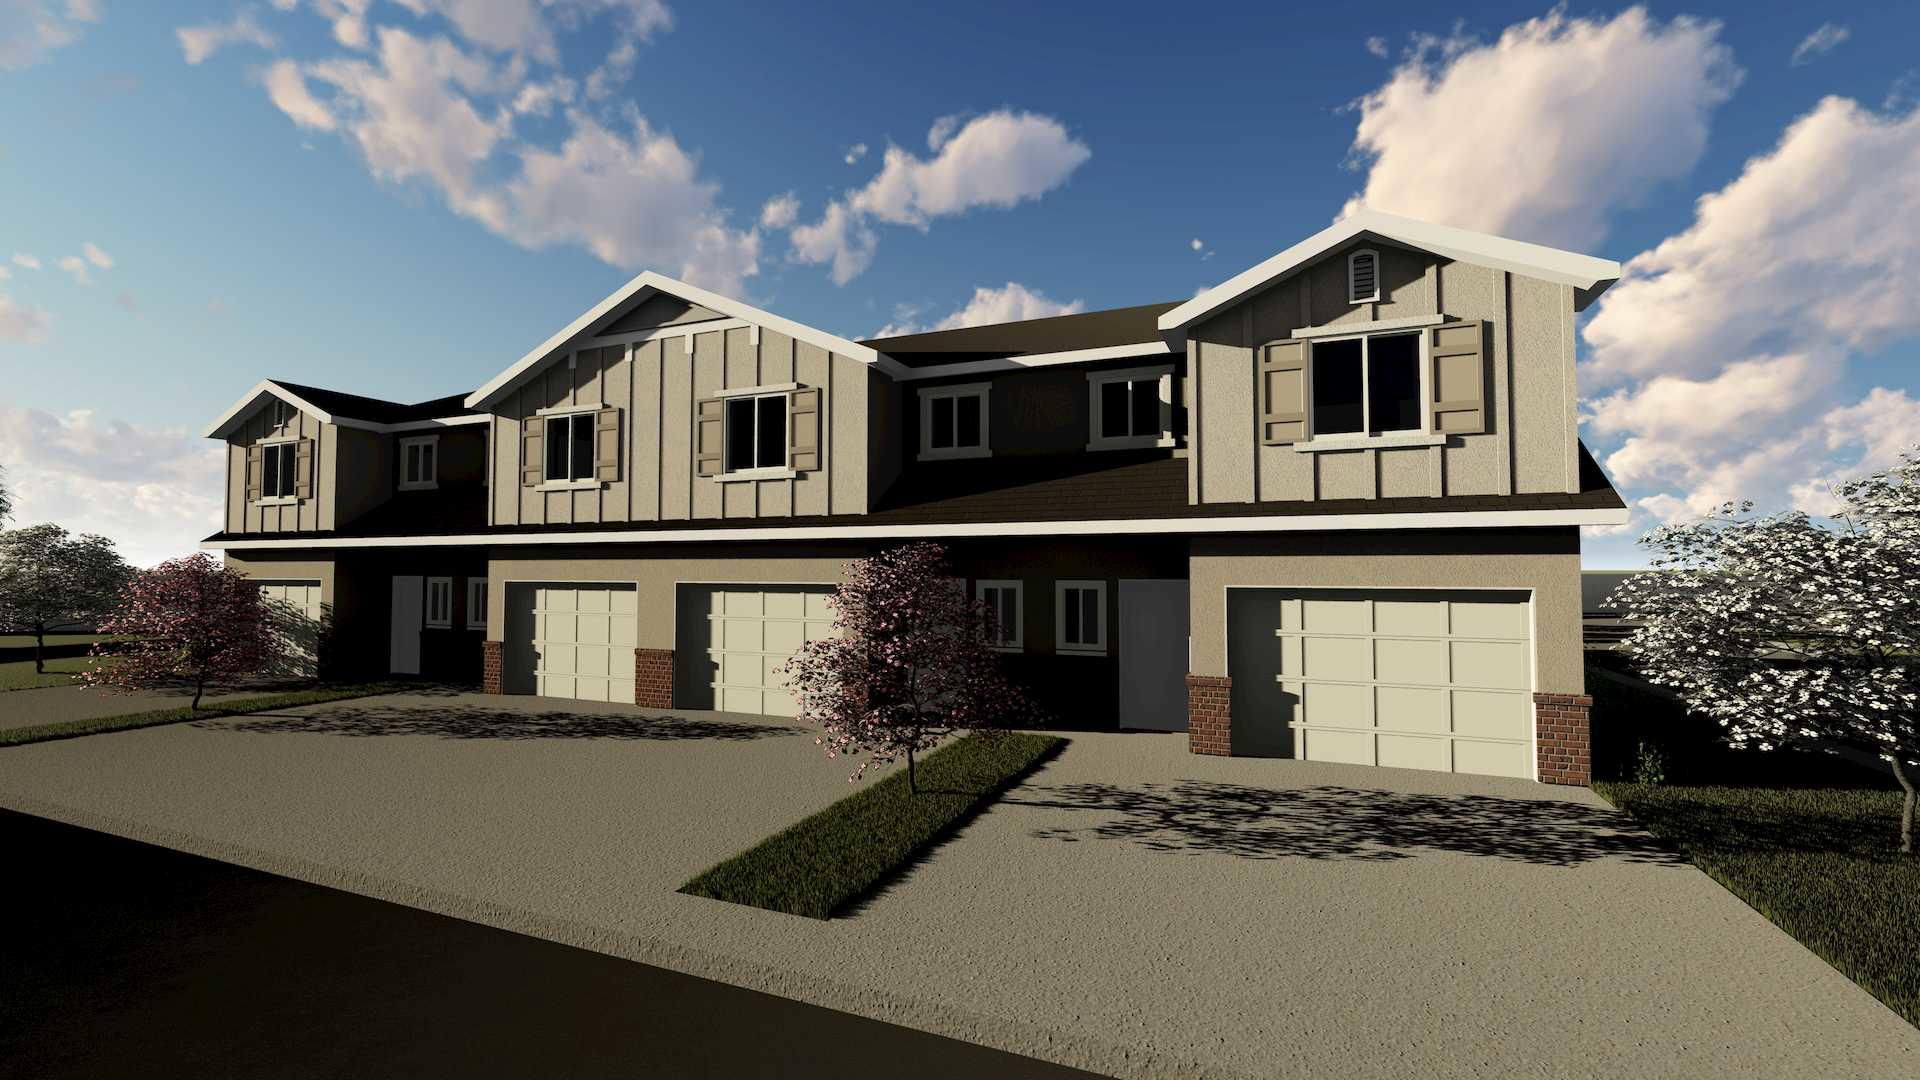 Multifamily for sale in the Boise Metro